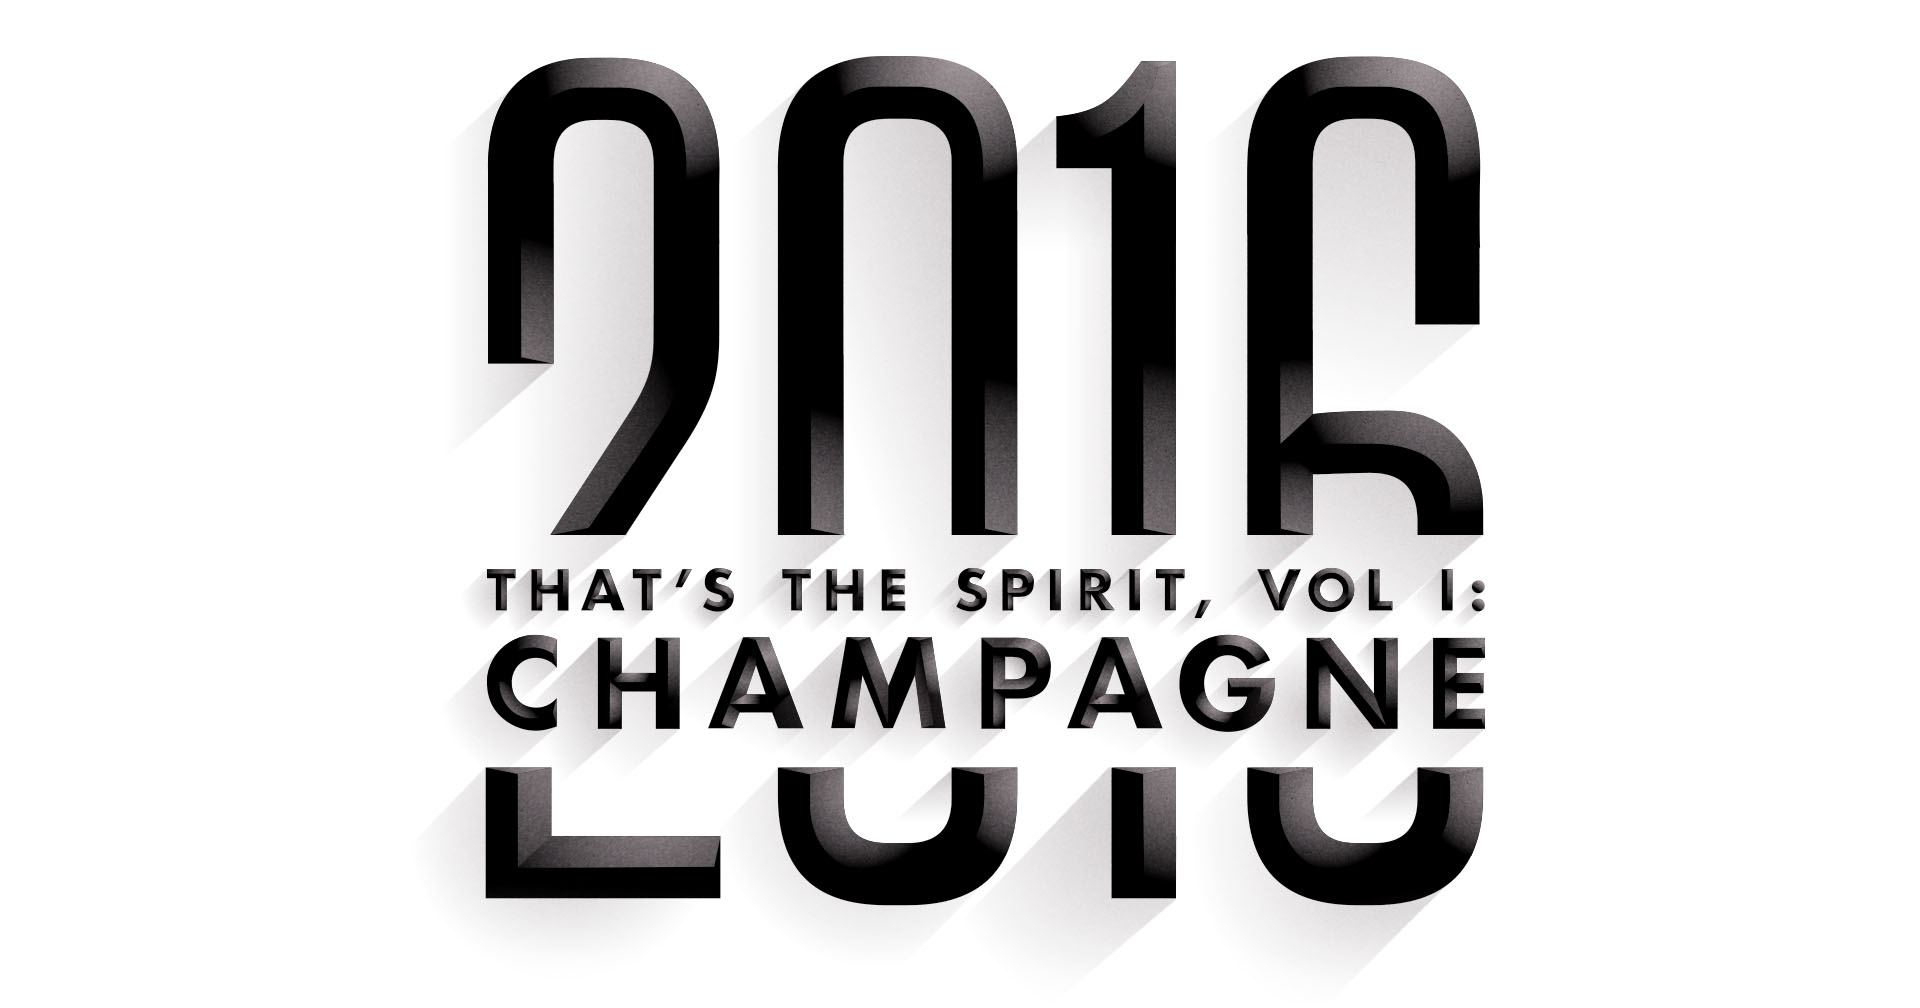 That's the Spirit, Vol. I: Champagne